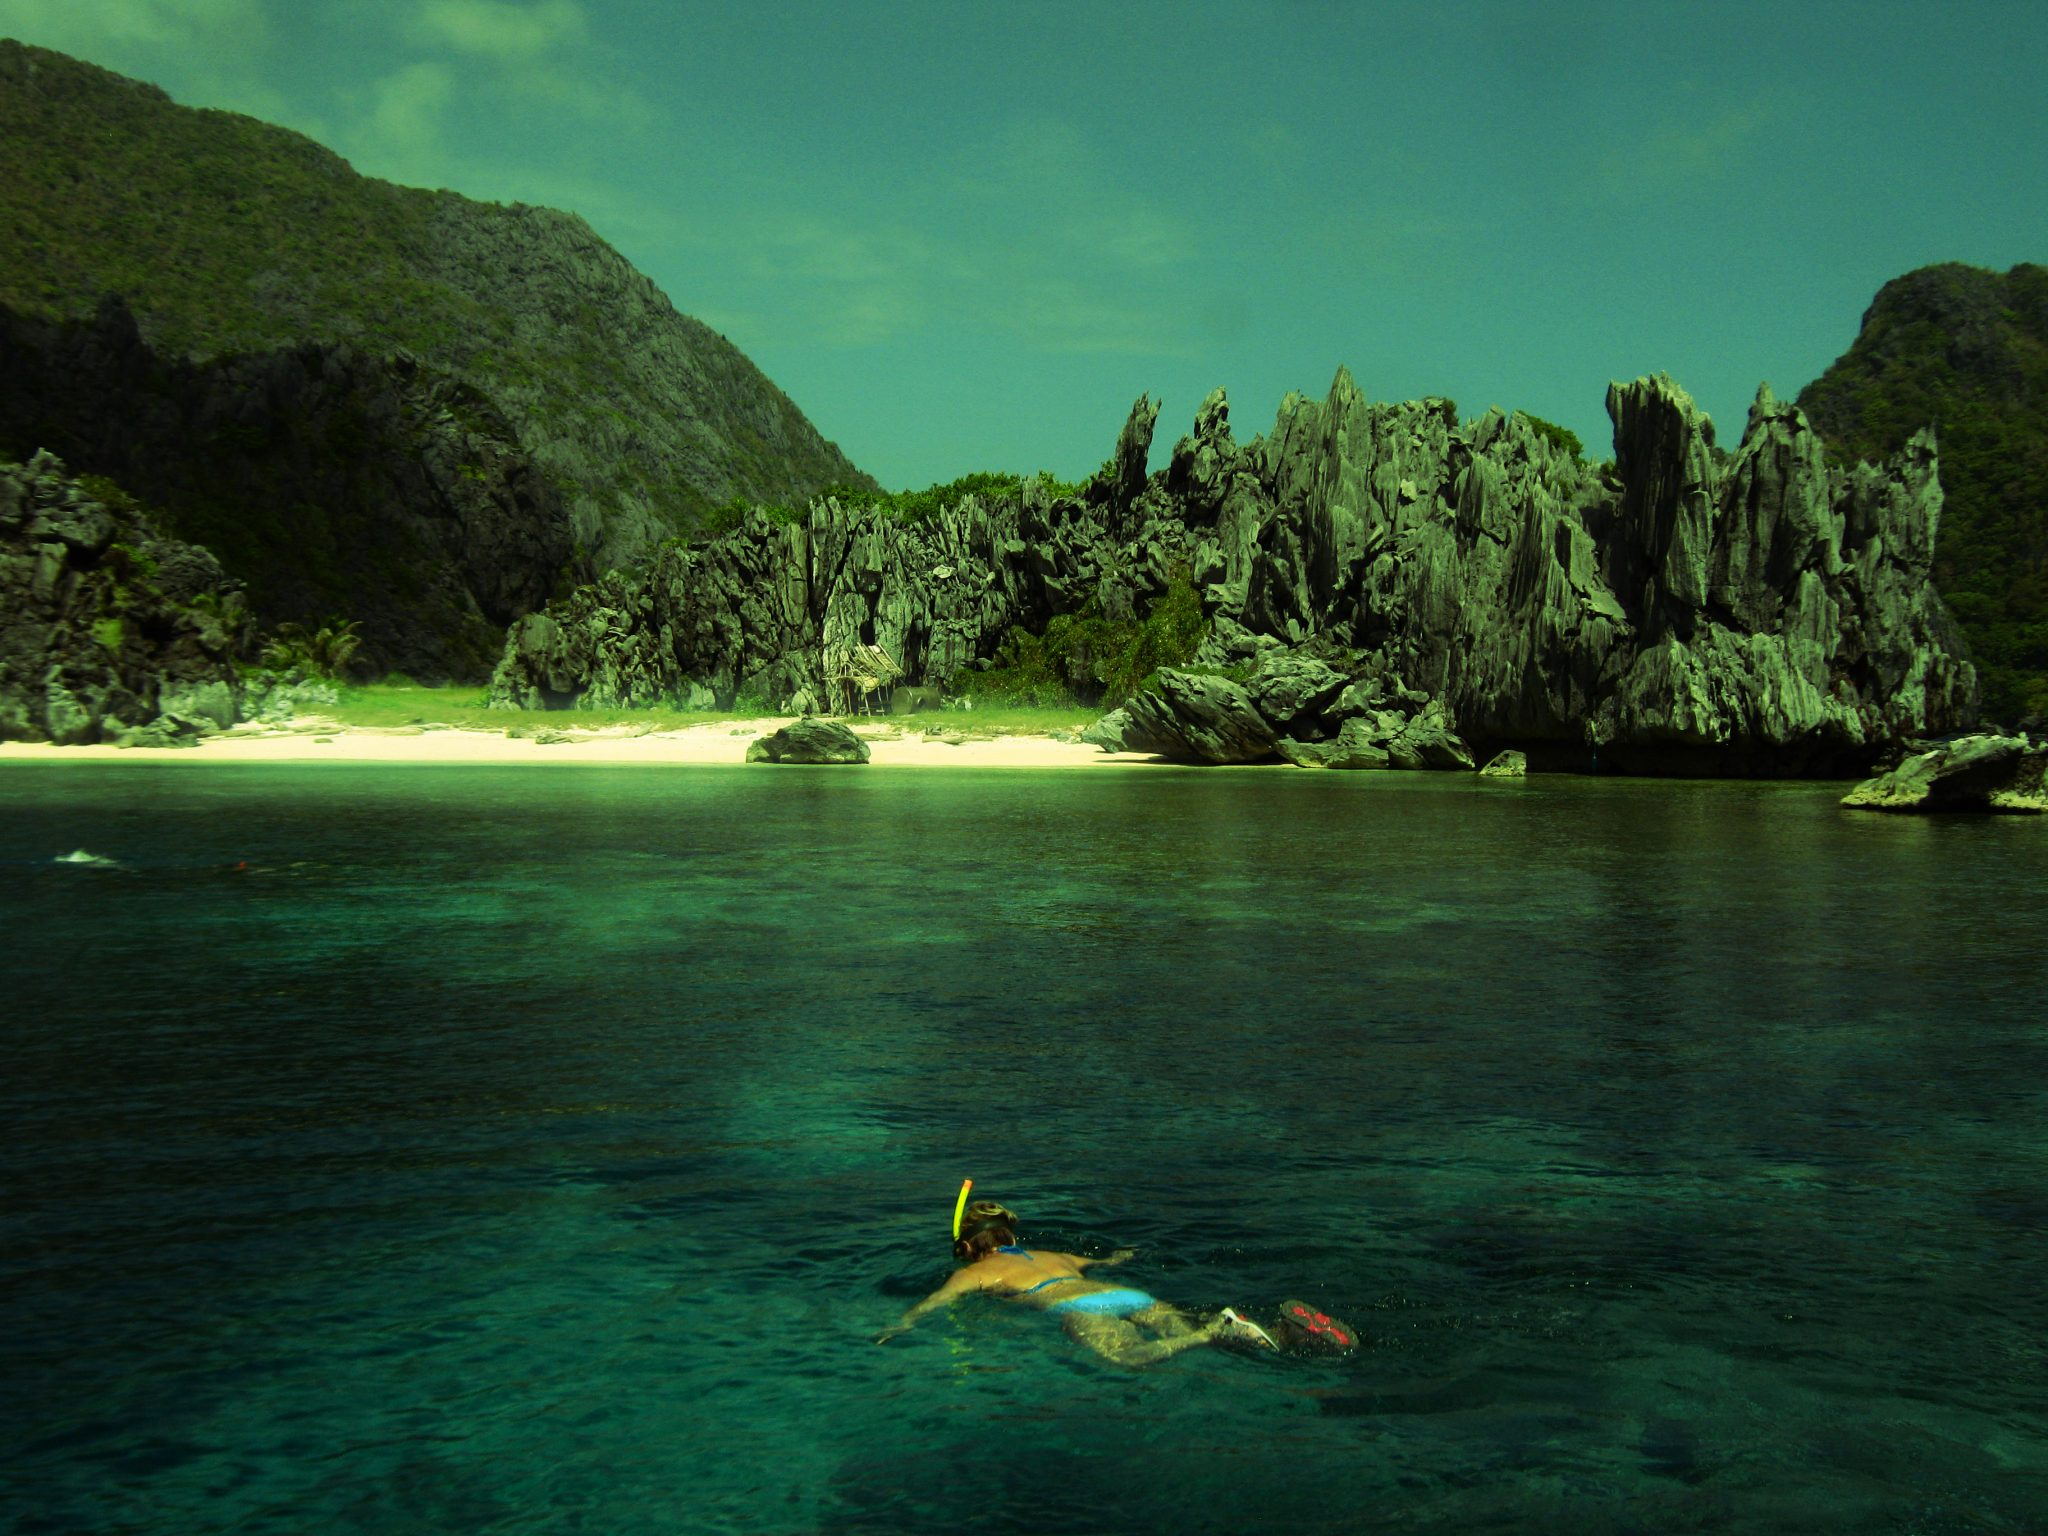 Snorkeling is more fun in El Nido.